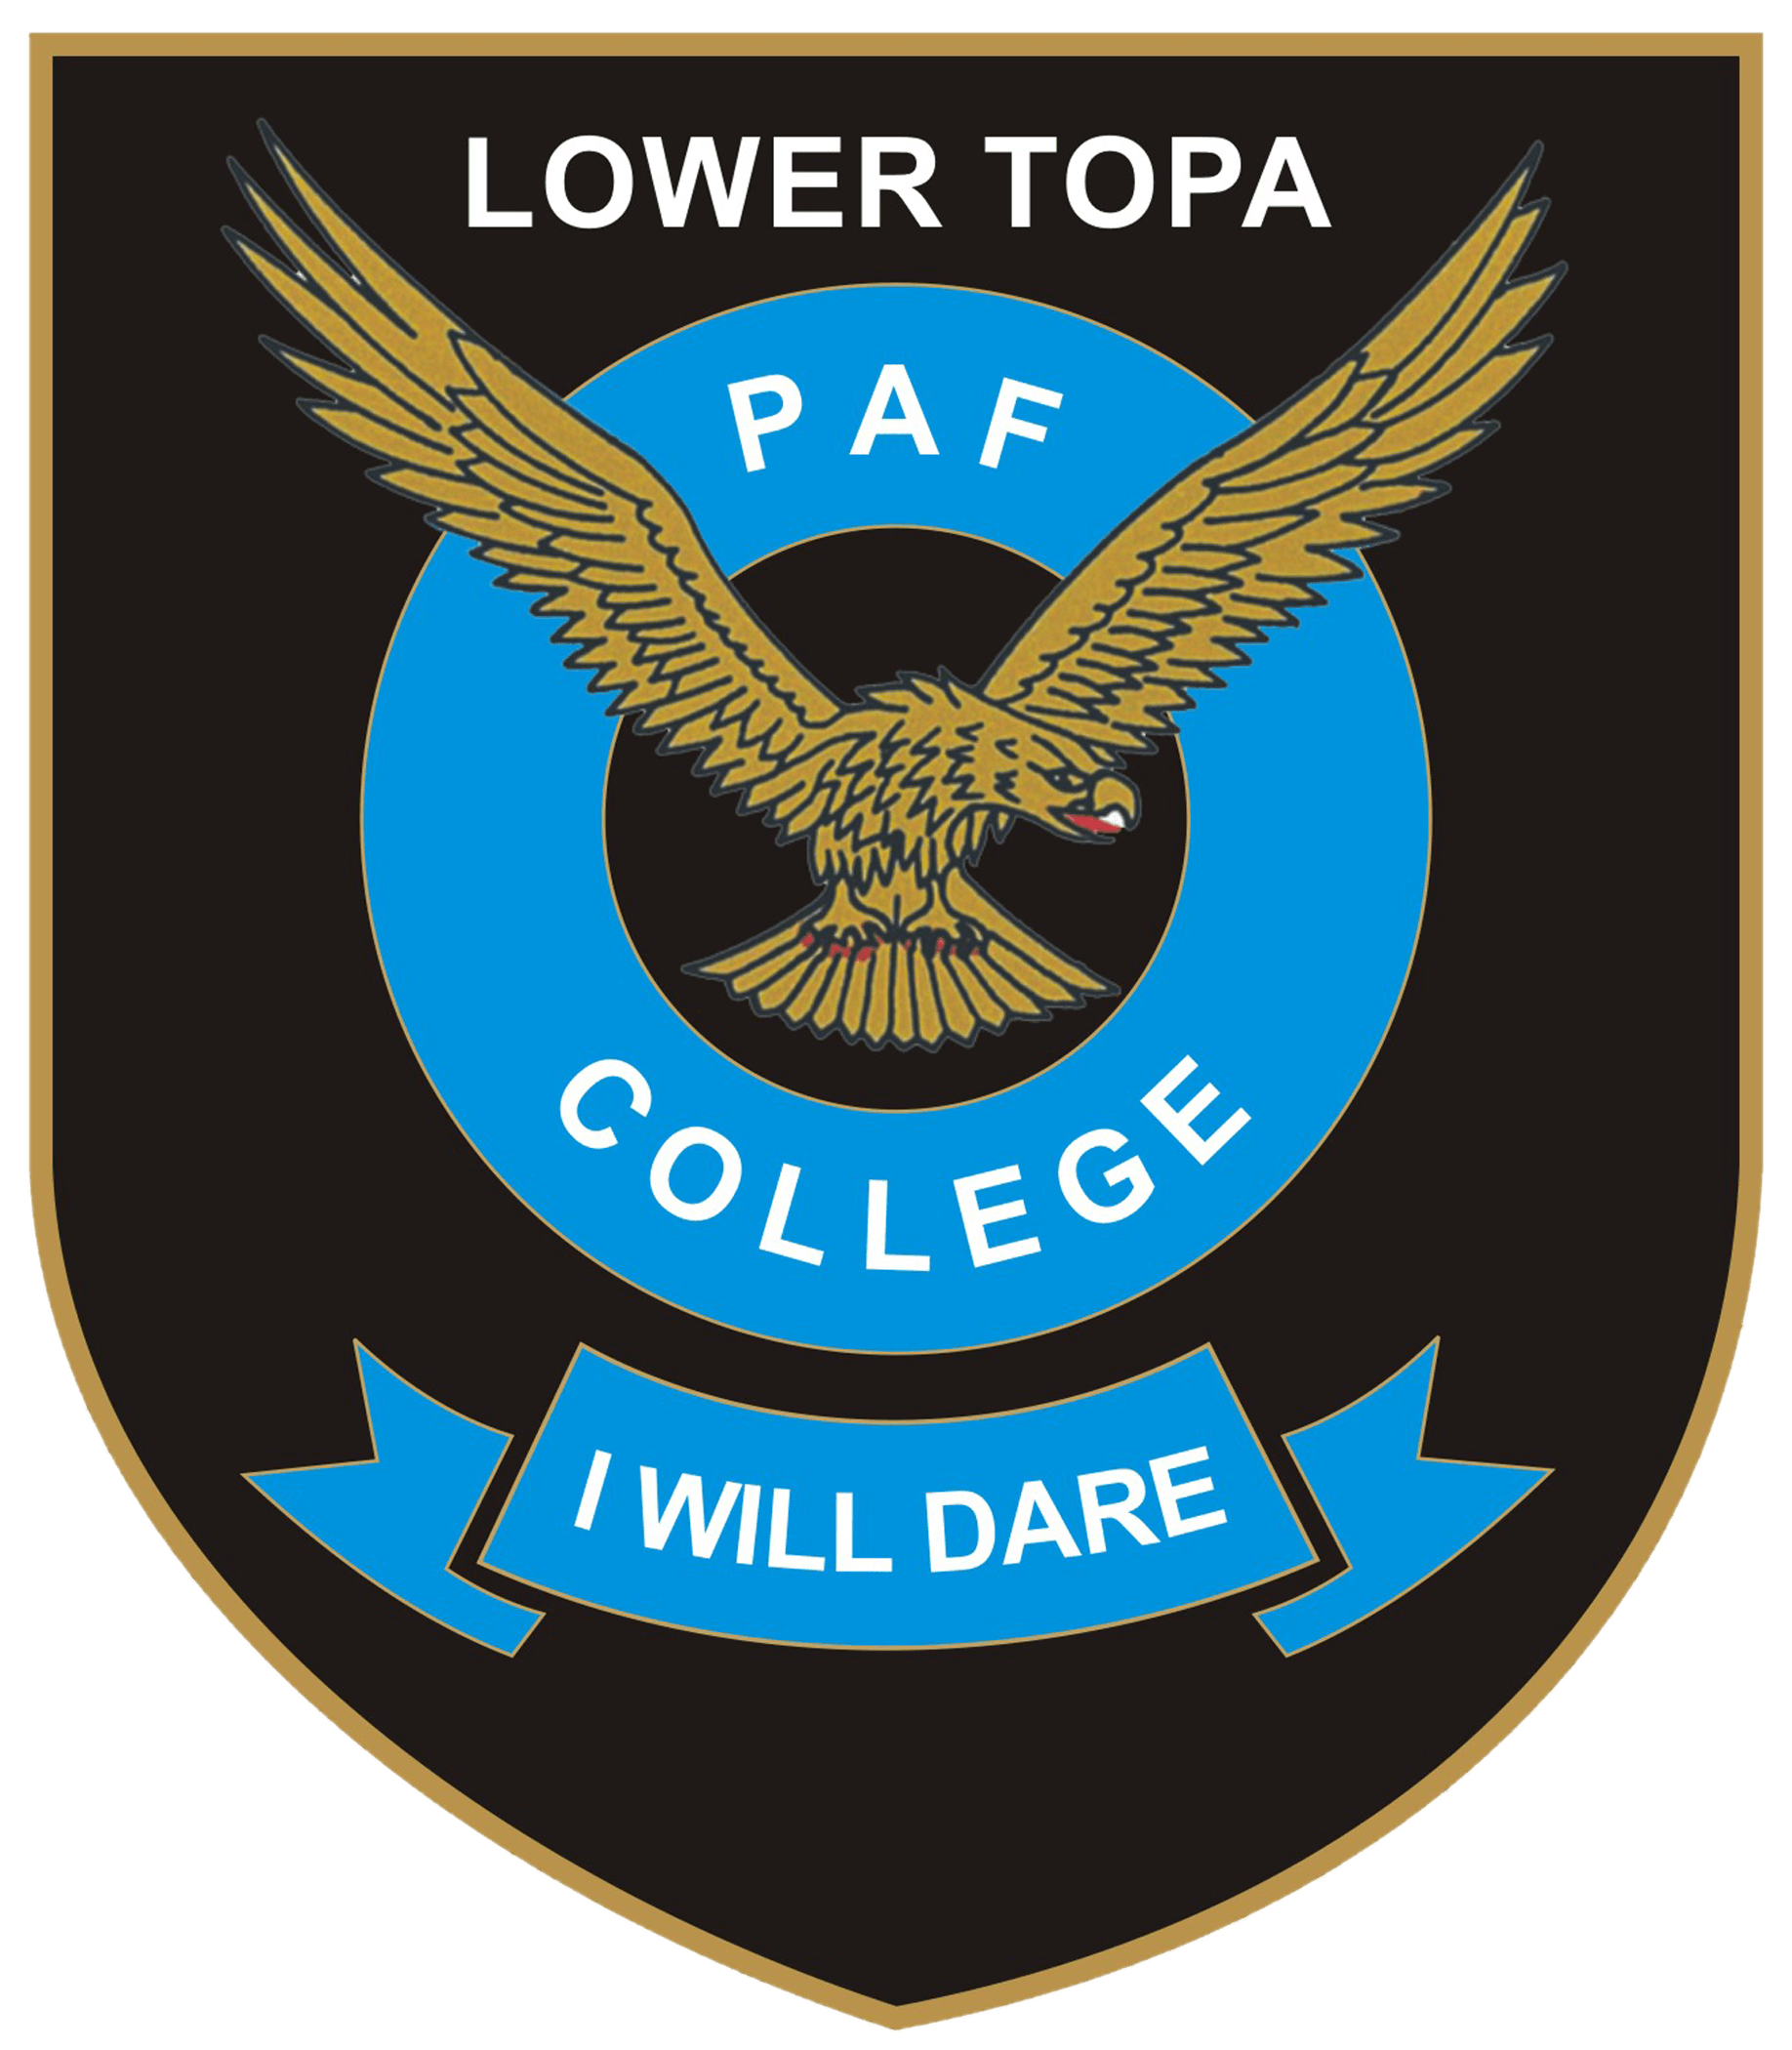 PAF College Lower Topa